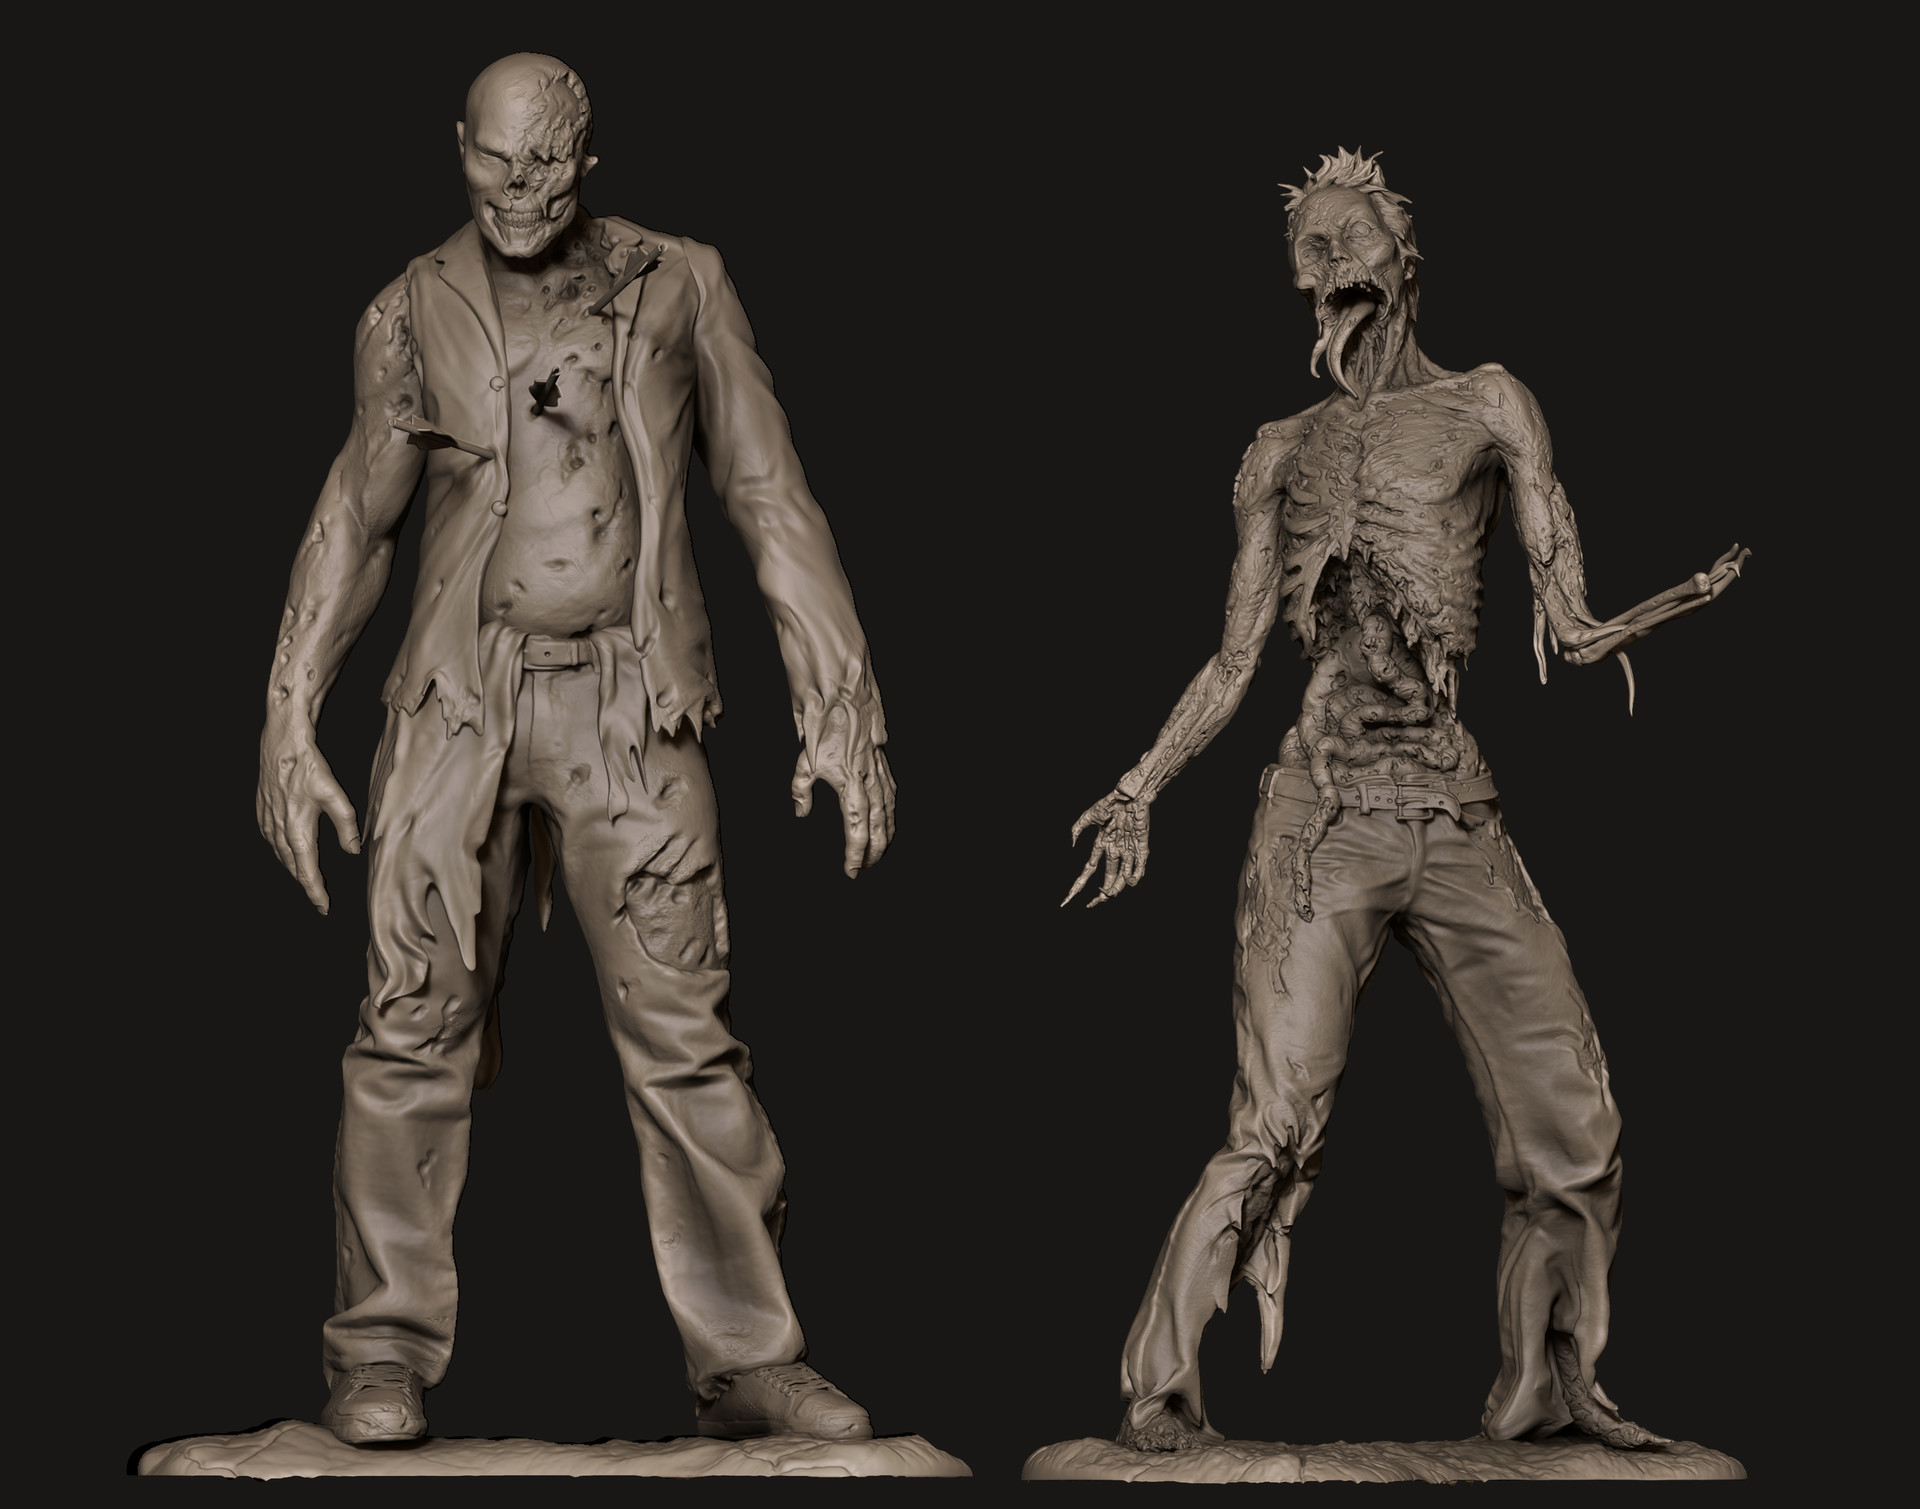 3d zombies - Places to eat in memphis tenn